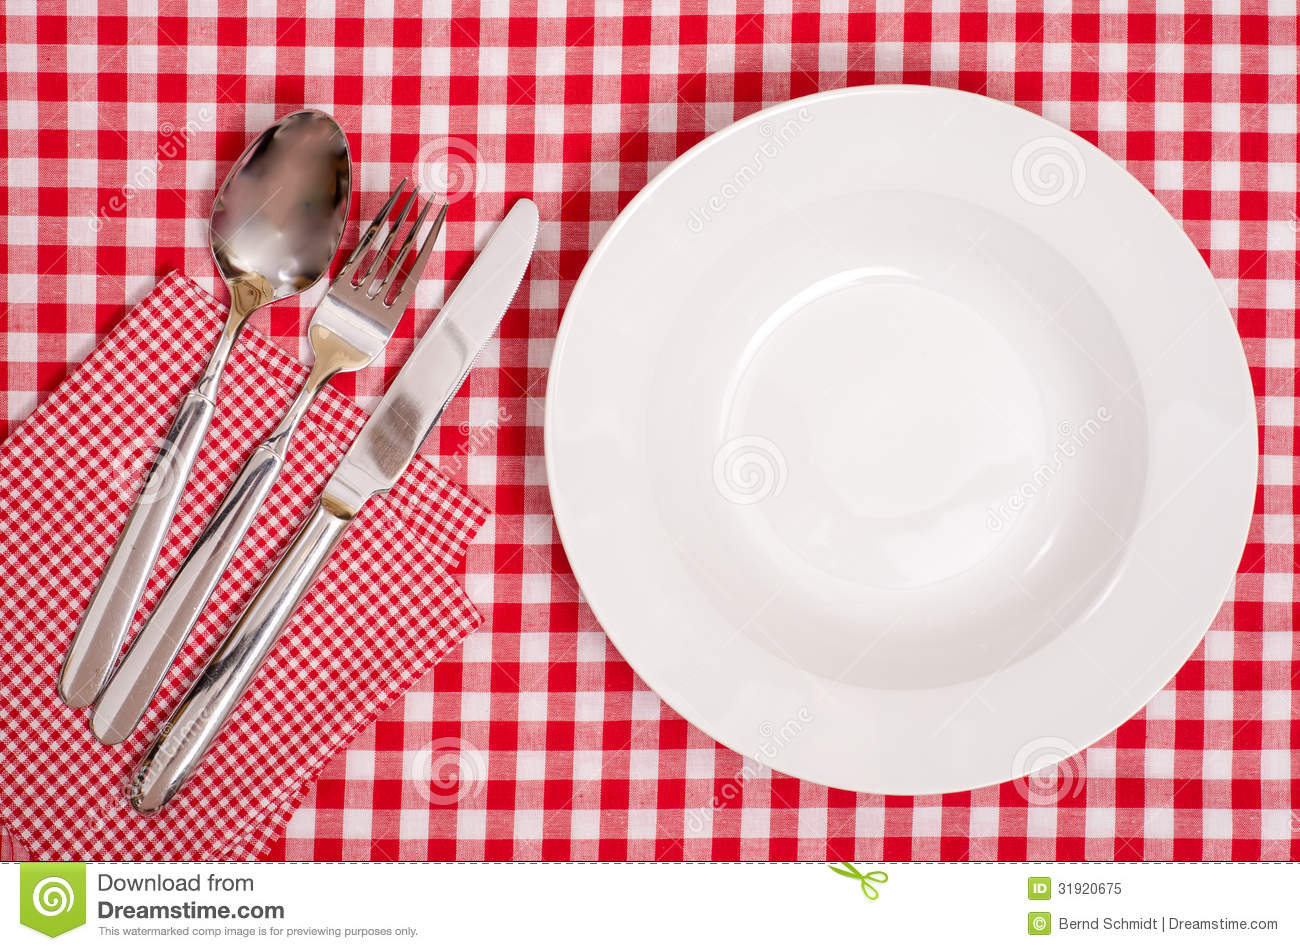 White Plate With Cutlery Royalty Free Stock Photo Image  : white plate cutlery spoon fork knife 31920675 from www.dreamstime.com size 1300 x 951 jpeg 233kB